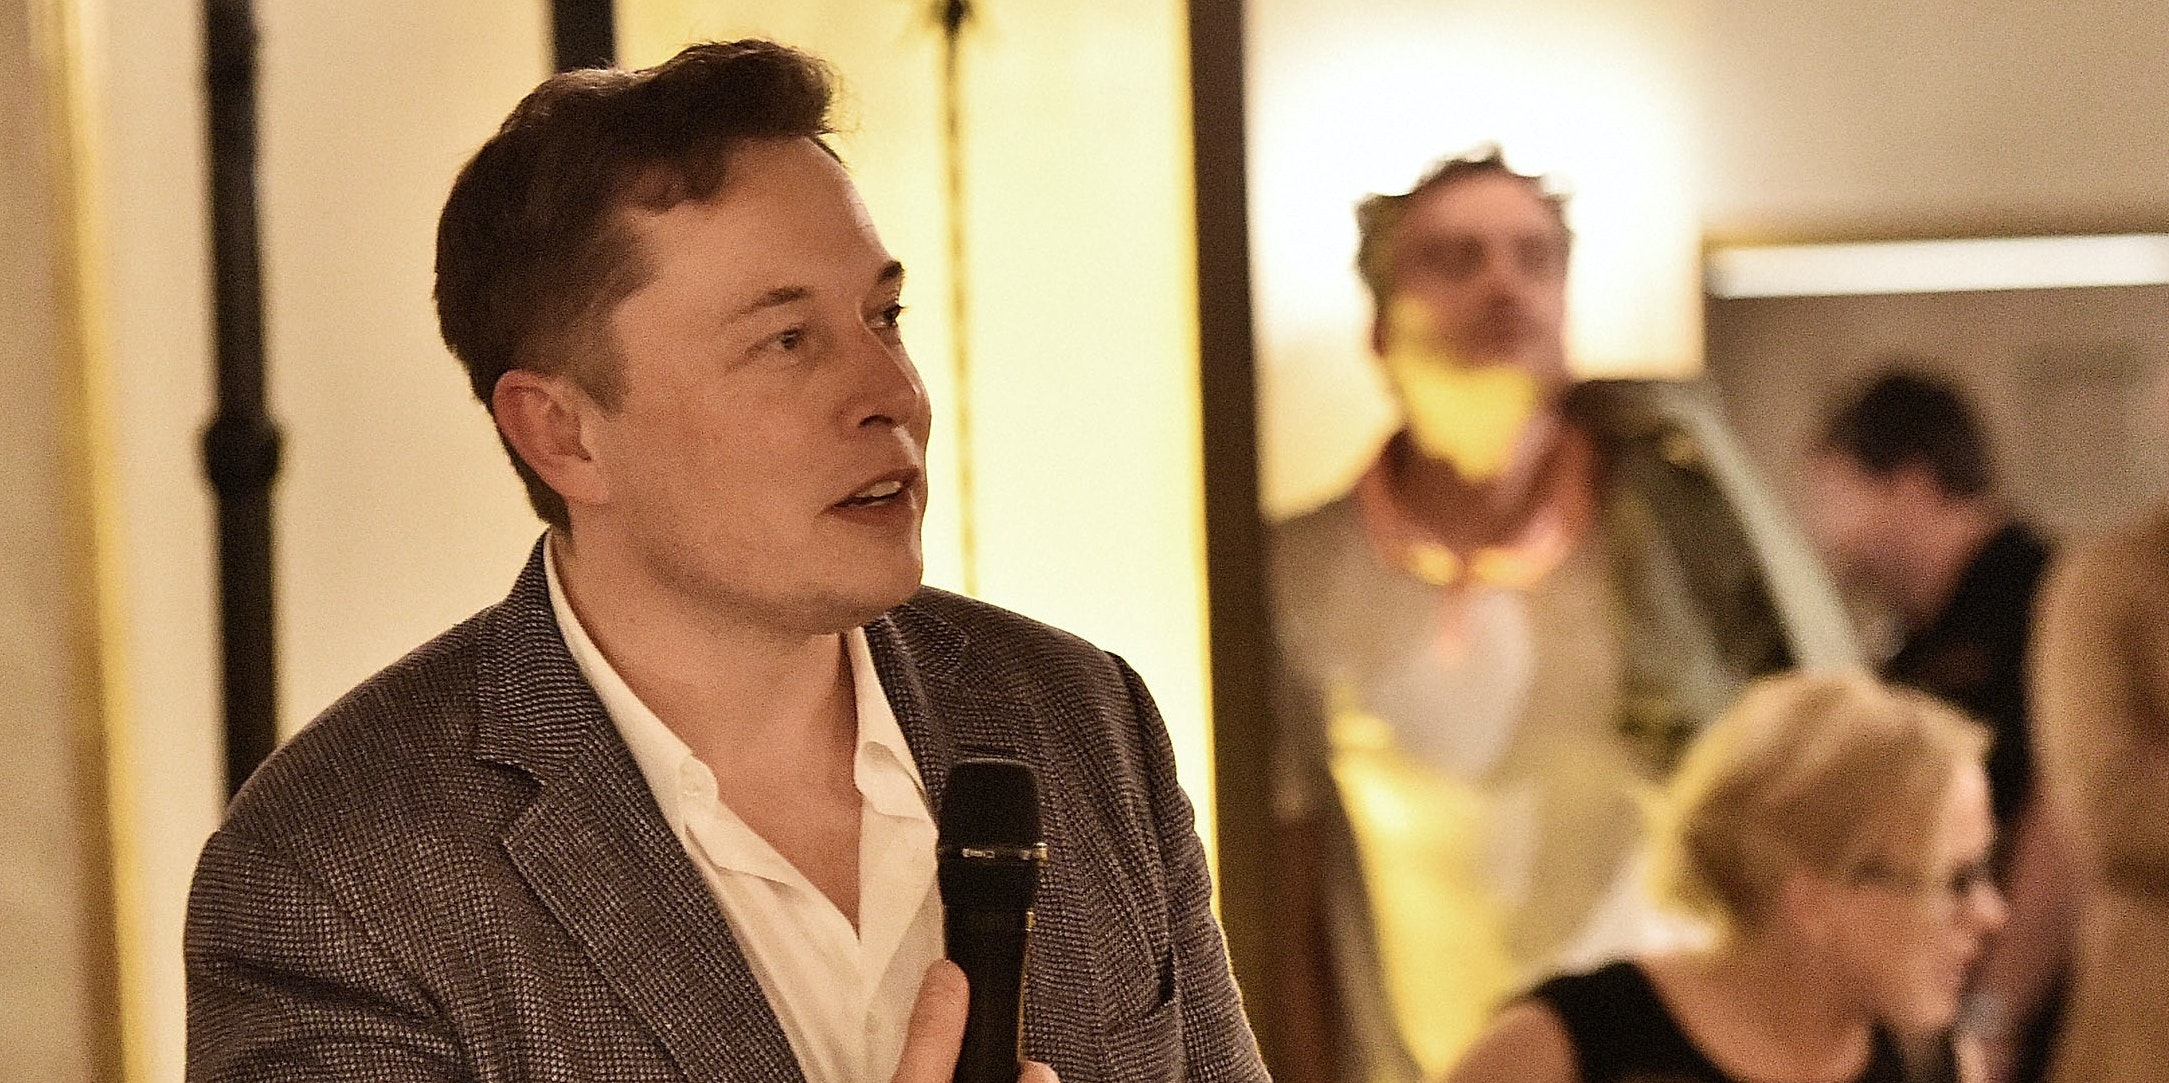 Watch Elon Musk's Speeches to Get the Politics Out of Your Mouth